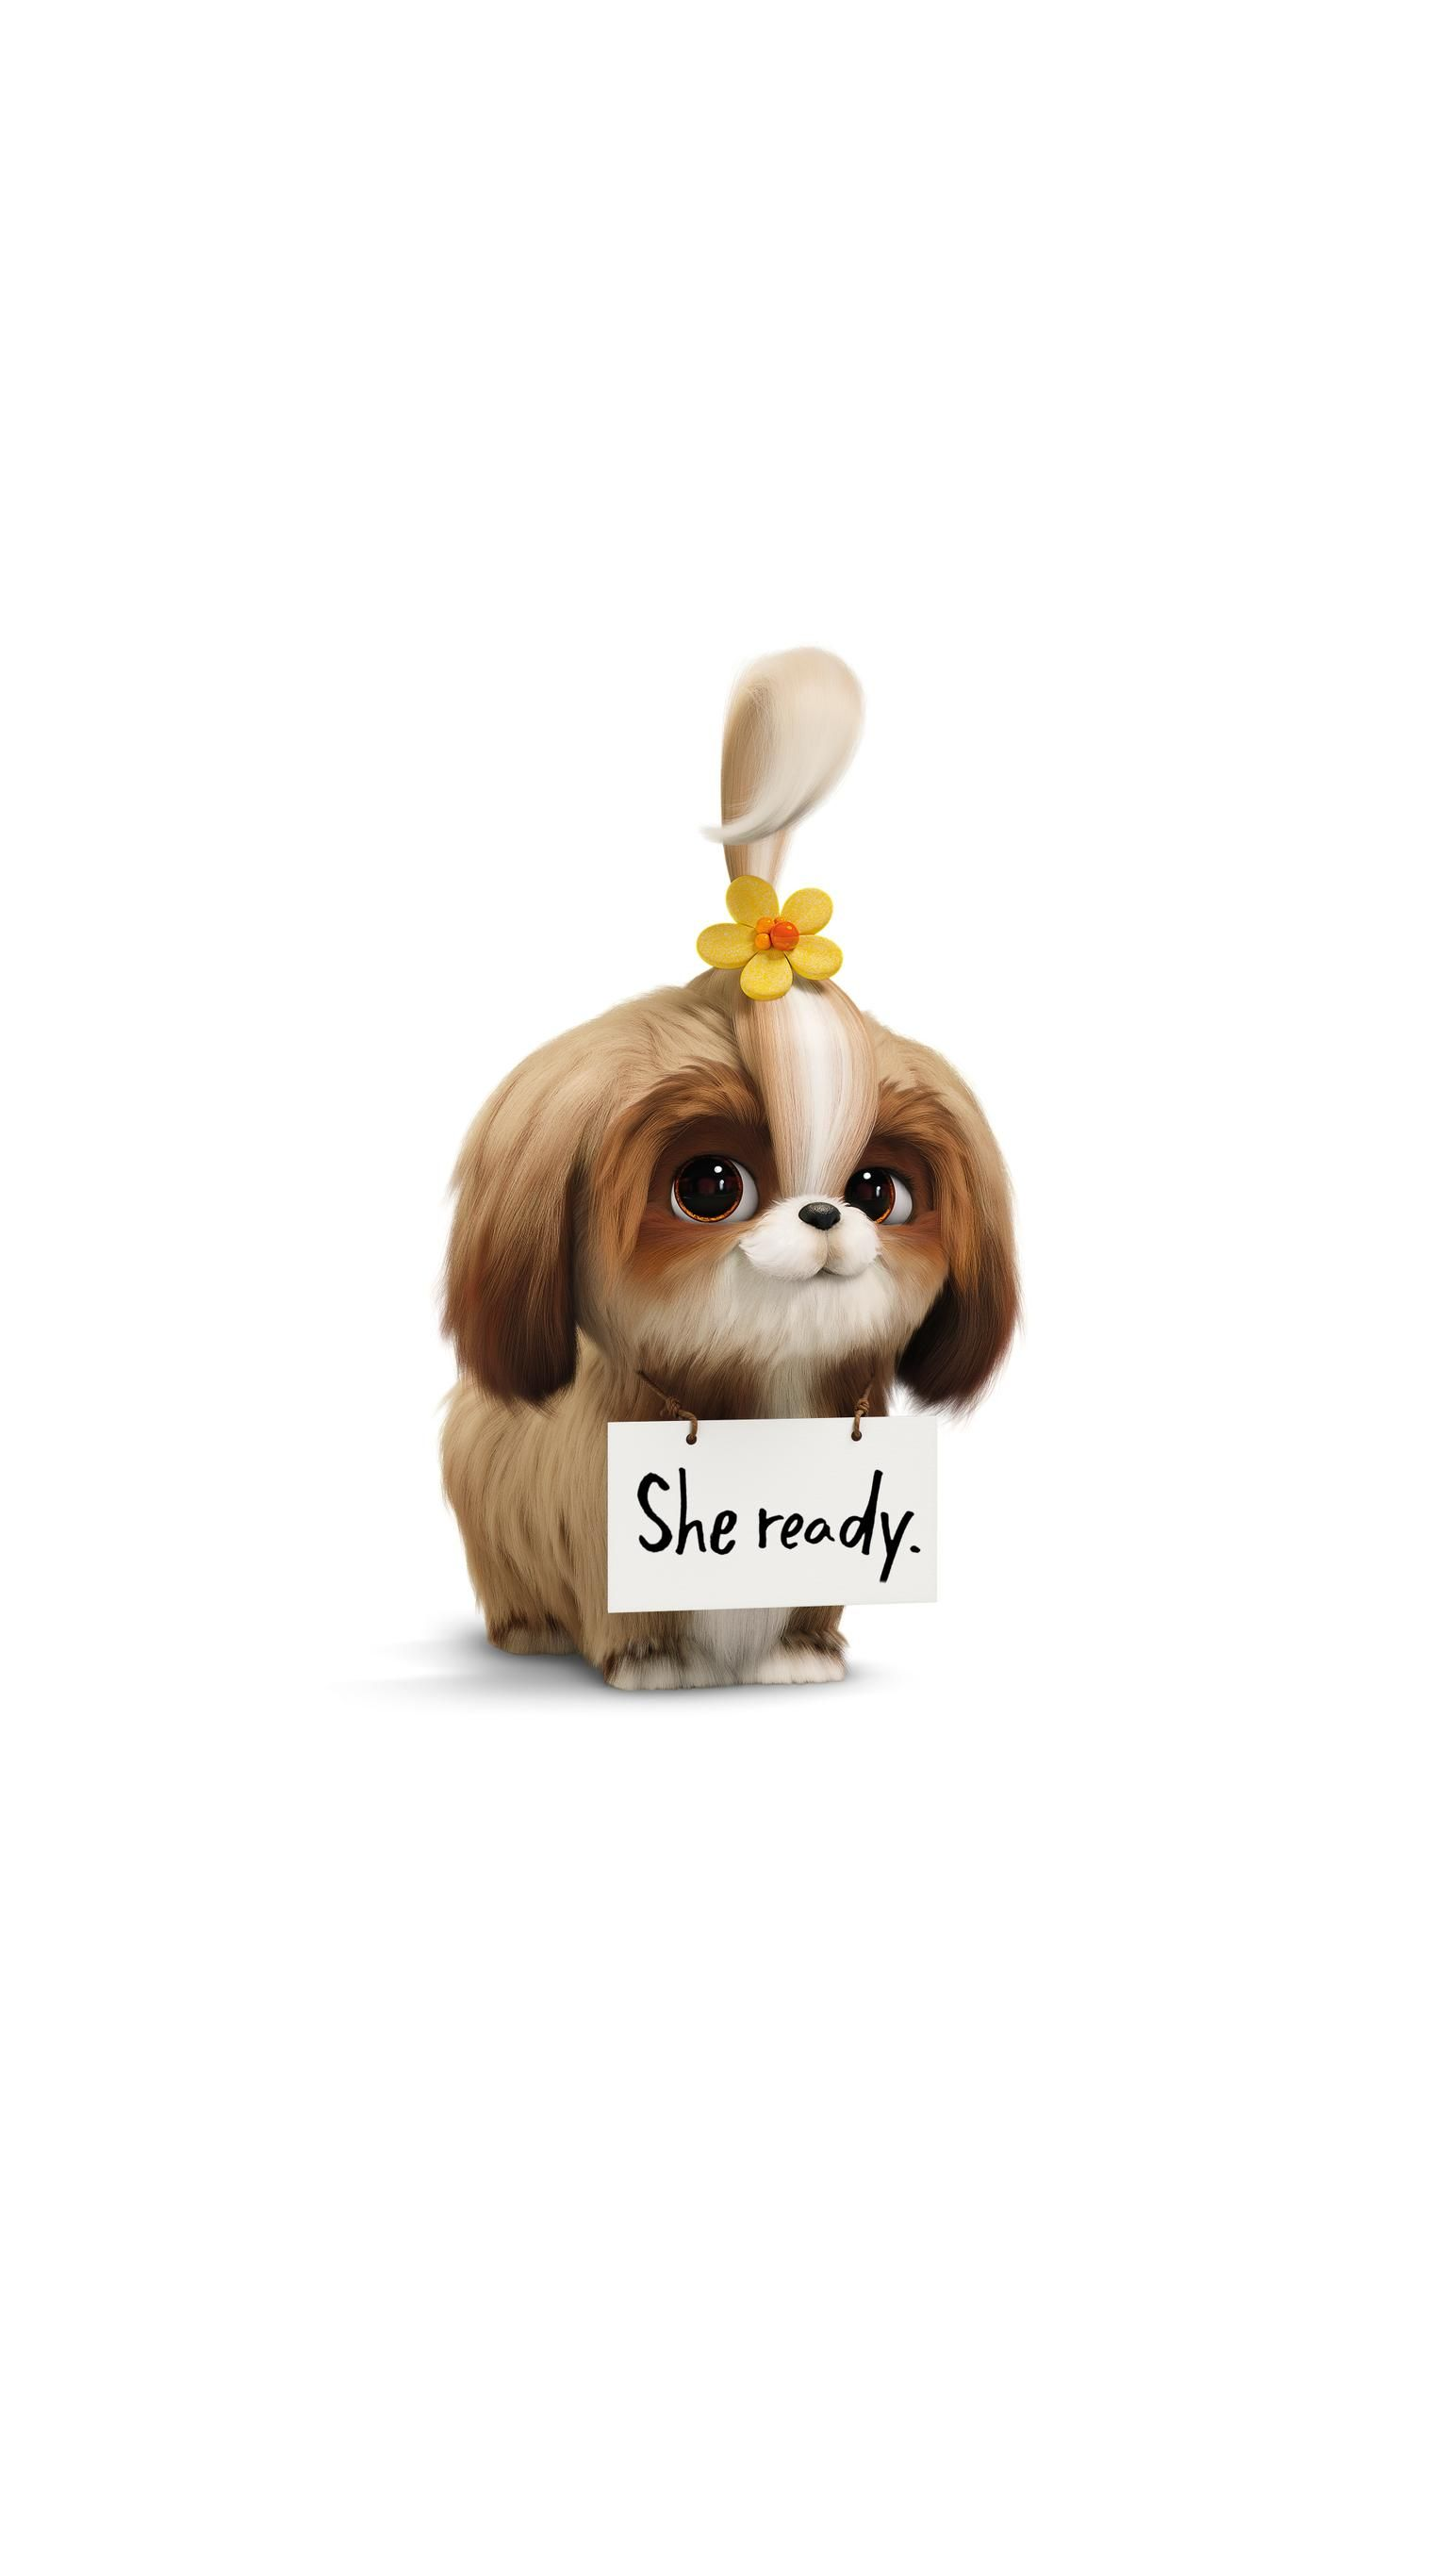 The Secret Life Of Pets 2 2019 Phone Wallpaper Moviemania Secret Life Of Pets Cute Cartoon Wallpapers Pets